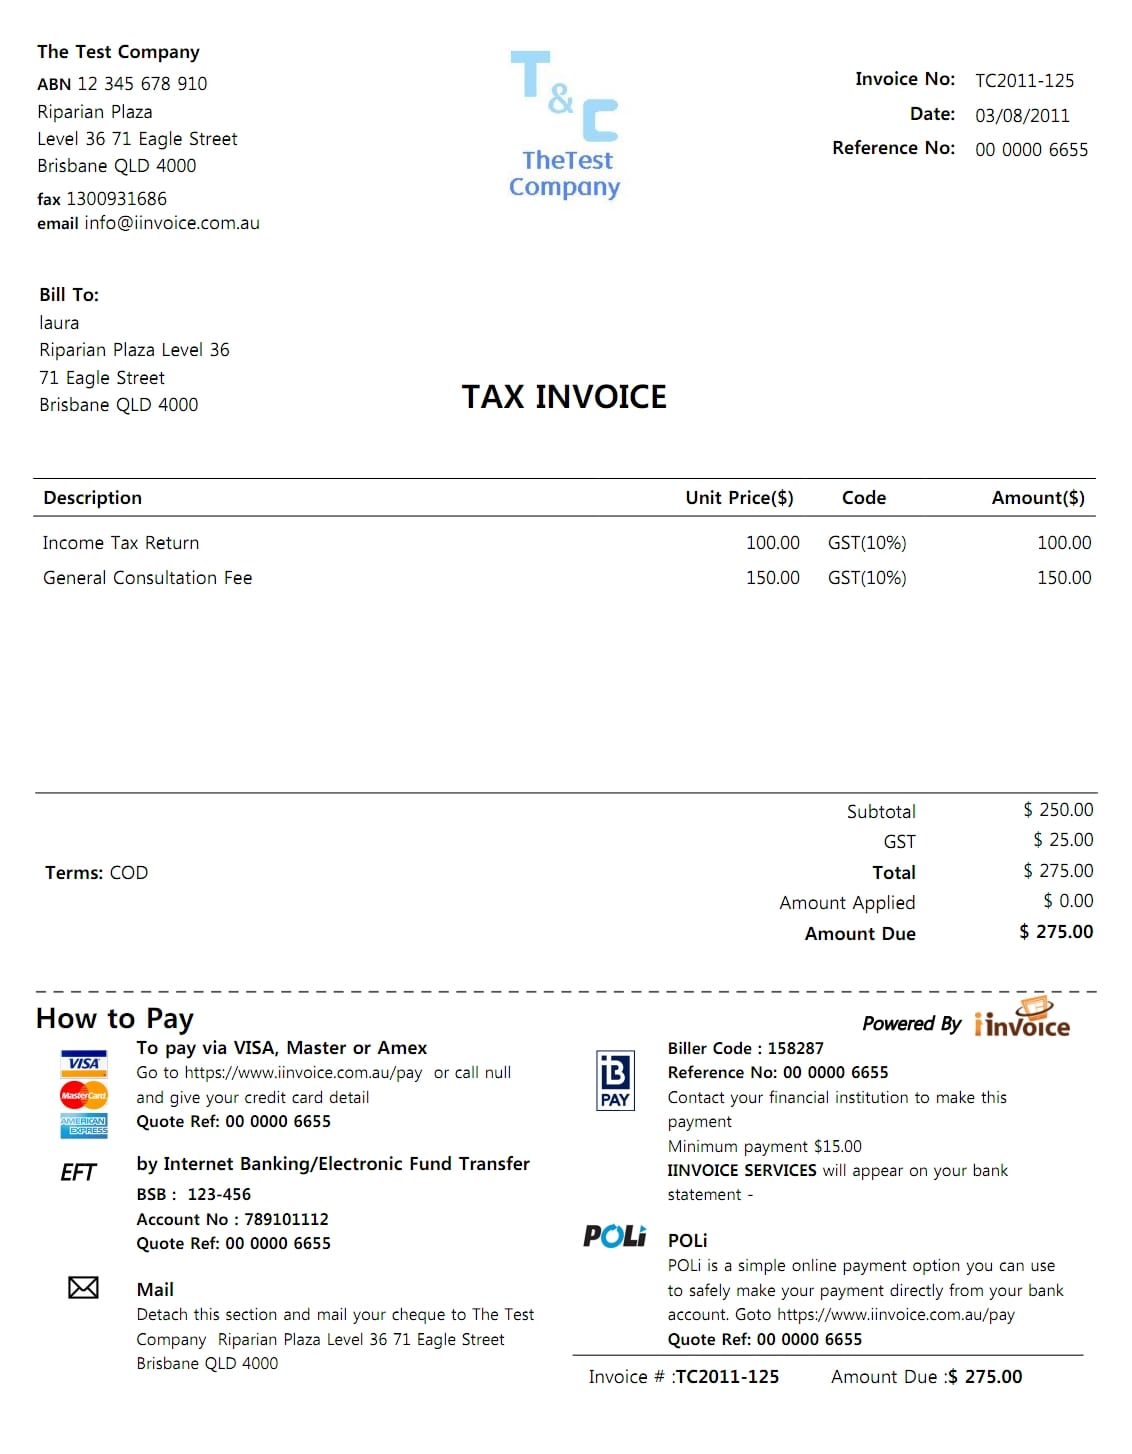 Free Invoices For Small Business Paypal Invoice Template Spreadsheet Templates for Busines Spreadsheet Templates for Busines Pay Invoice Template